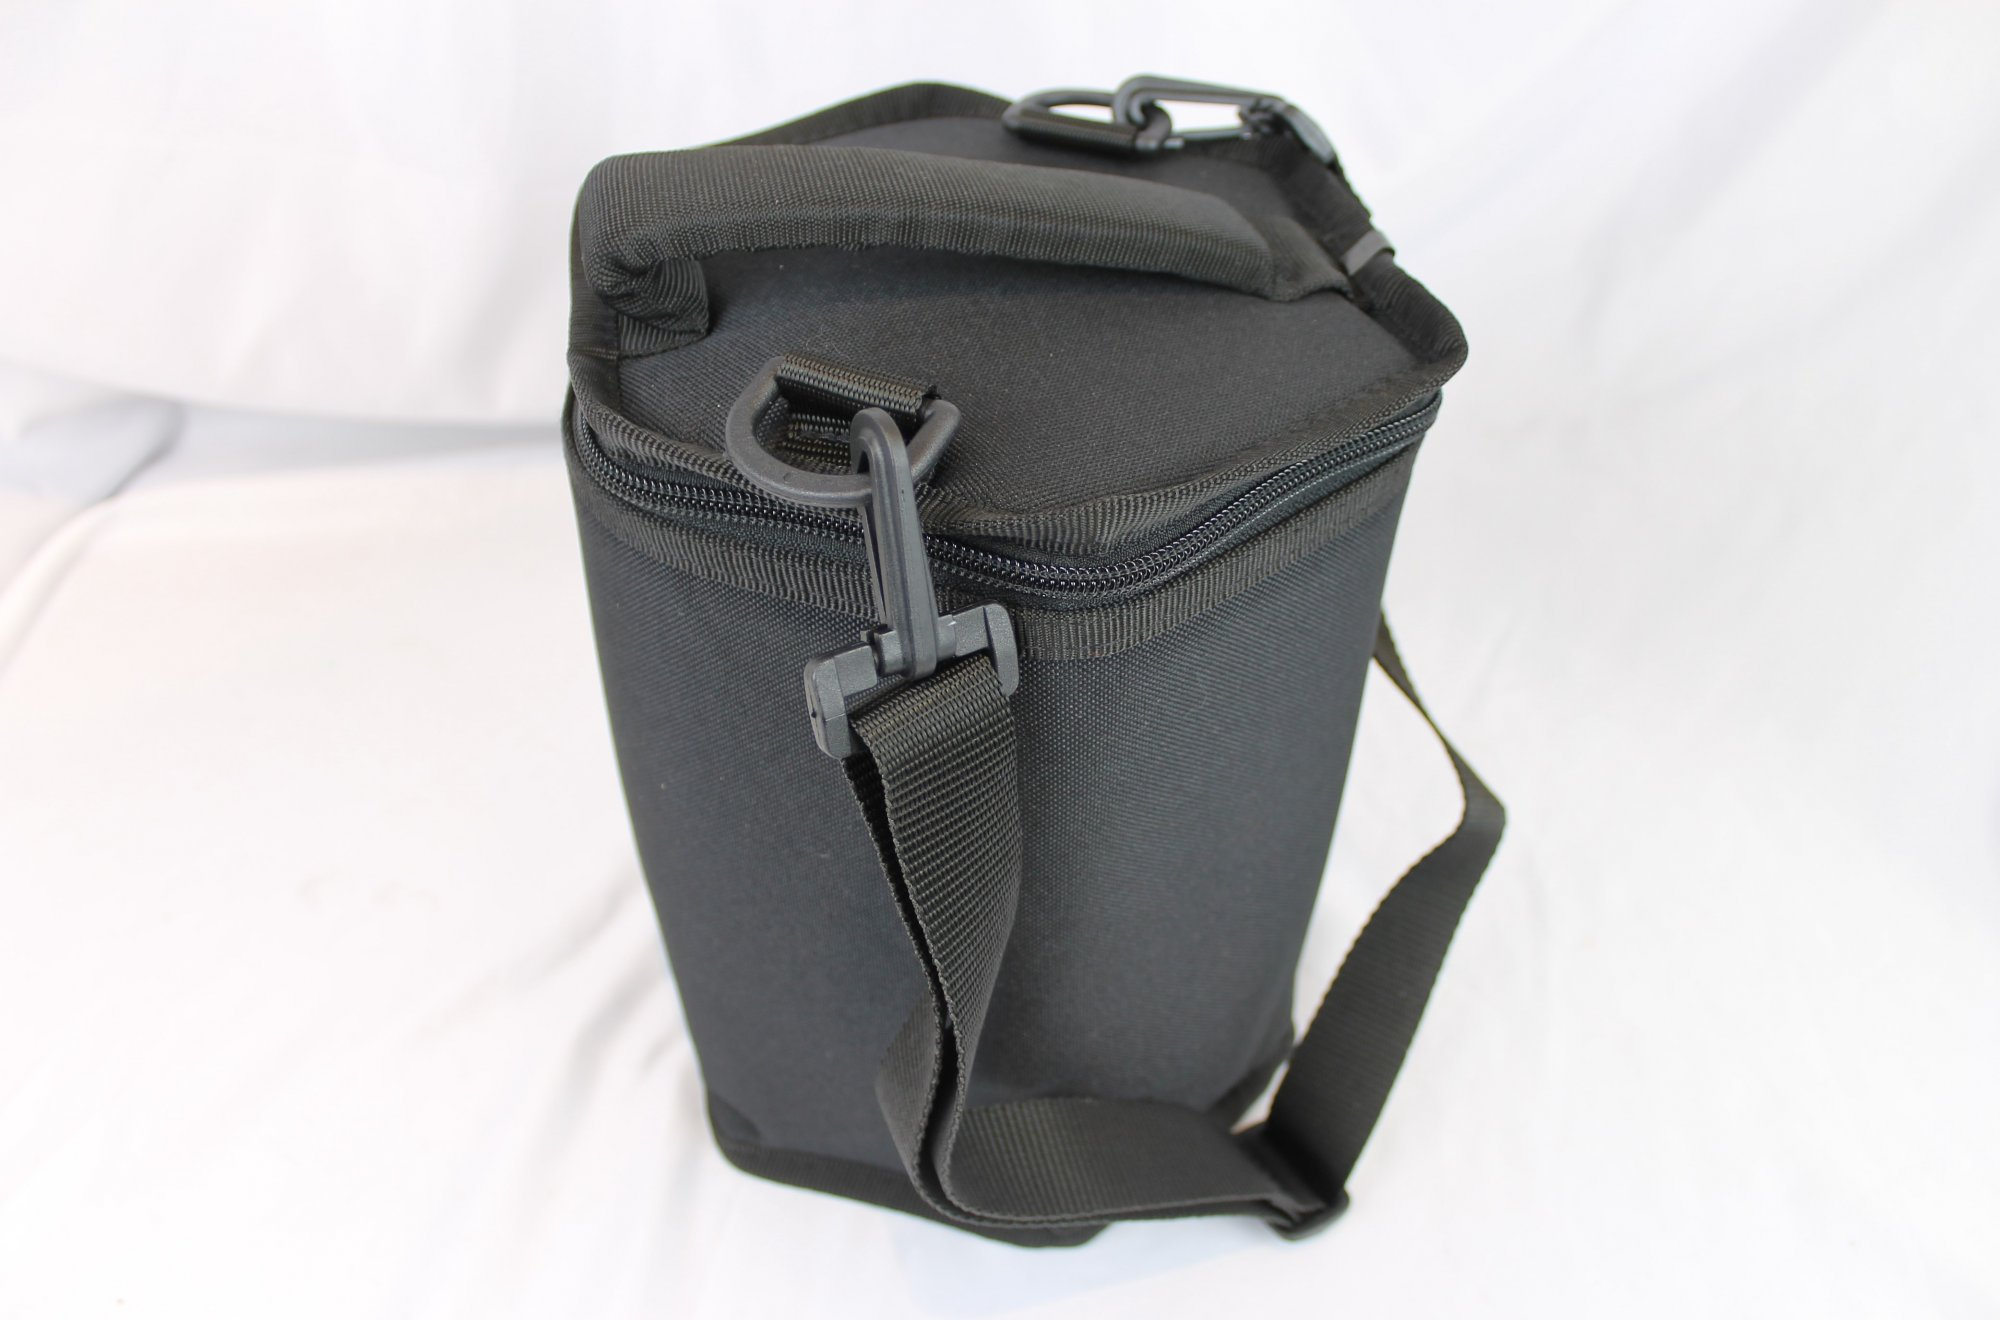 NEW Black Fuselli Gig Bag for Concertina 8.5 Height x 7 Diameter